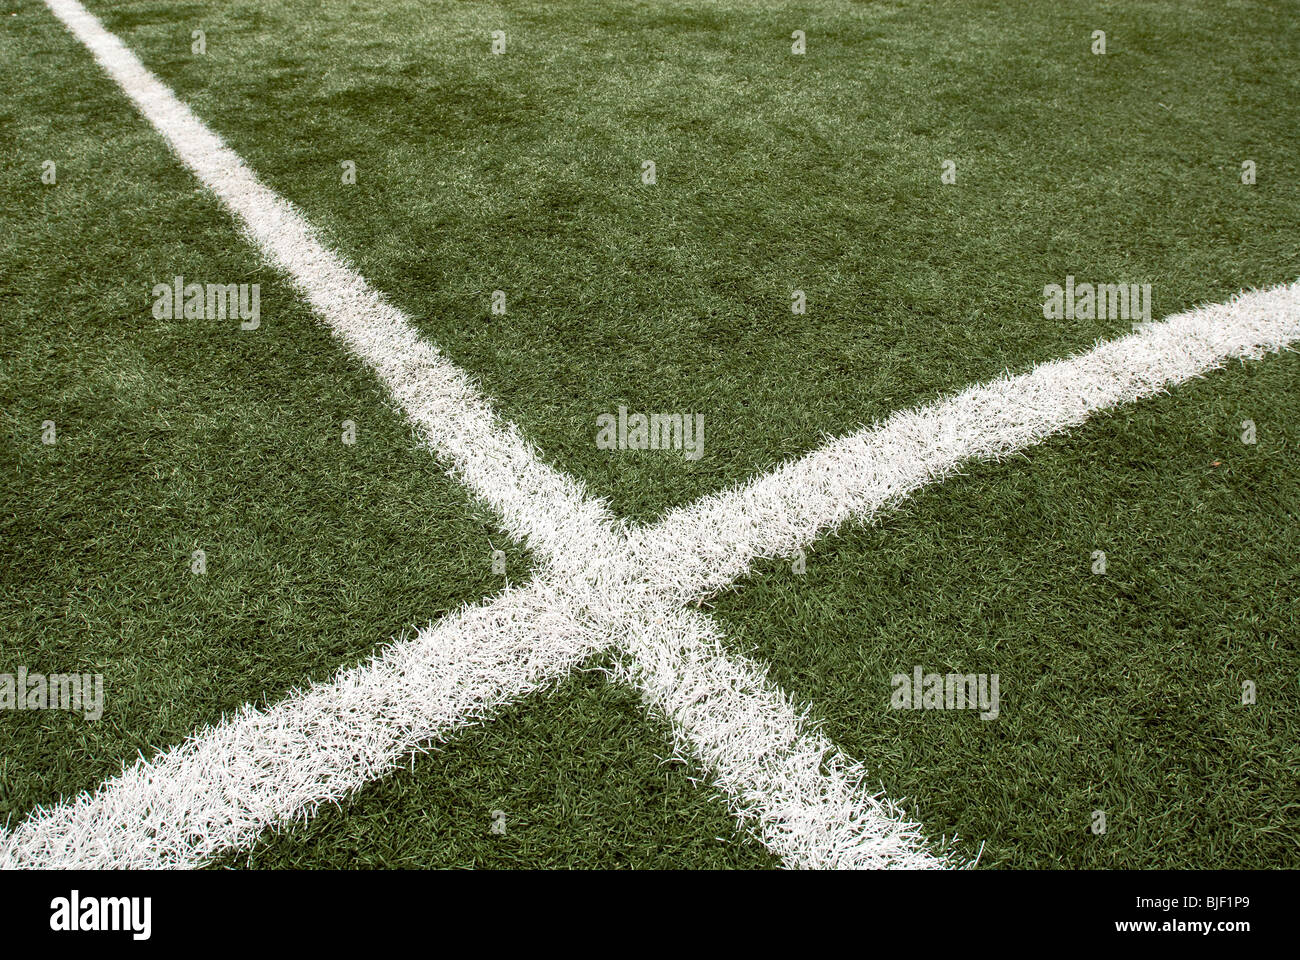 The AstroTurf PureGrass soccer/football field in Macombs Dam Park in the New York borough of the Bronx Stock Photo